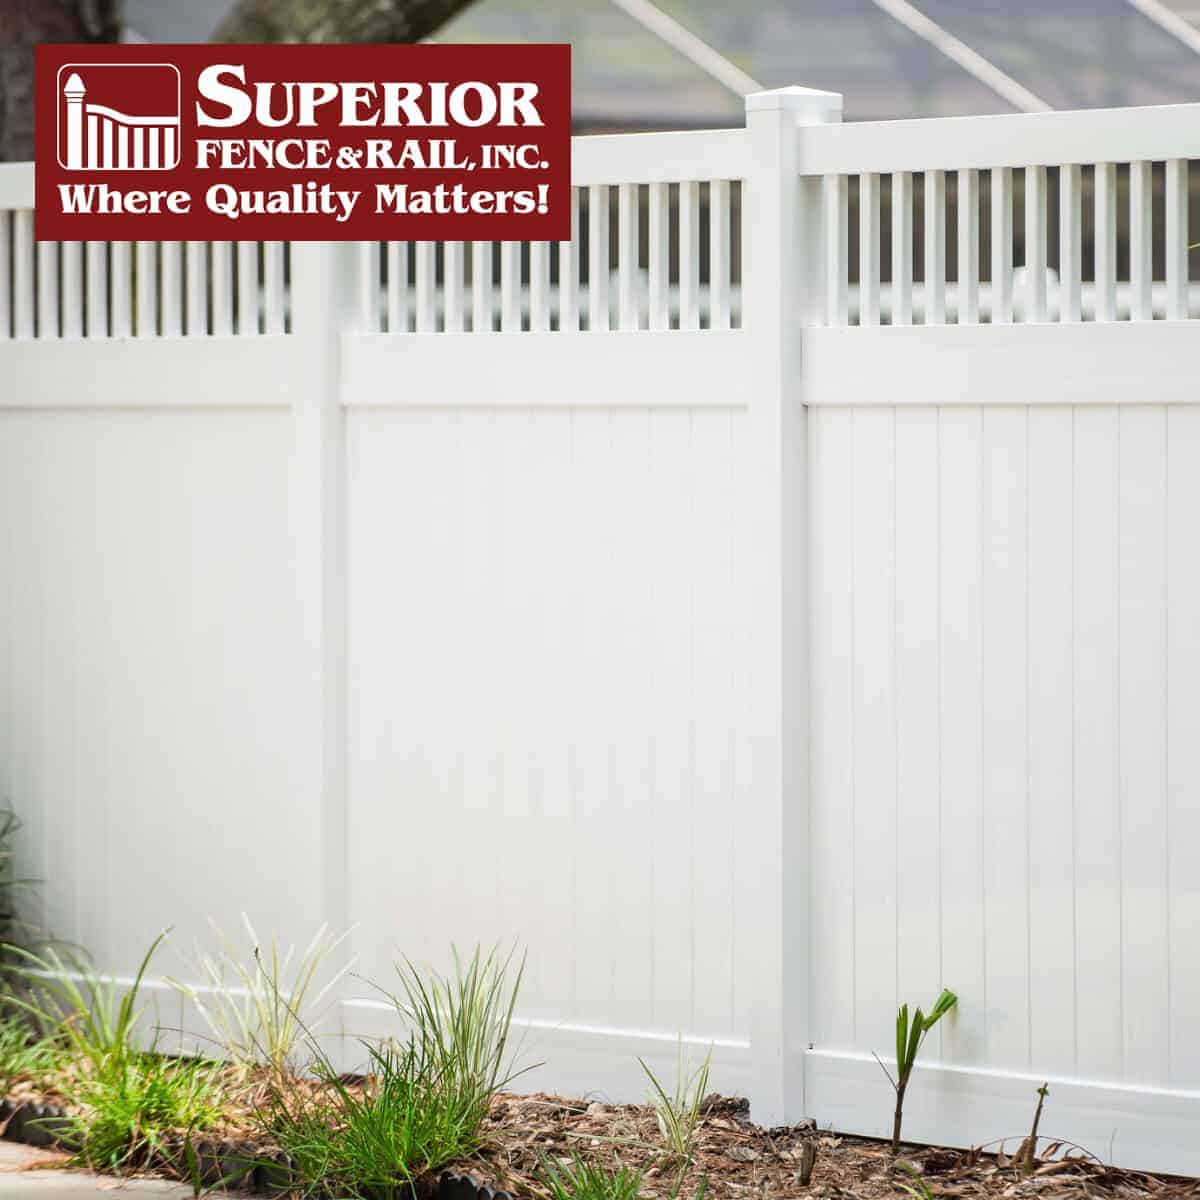 Charles City fence company contractor